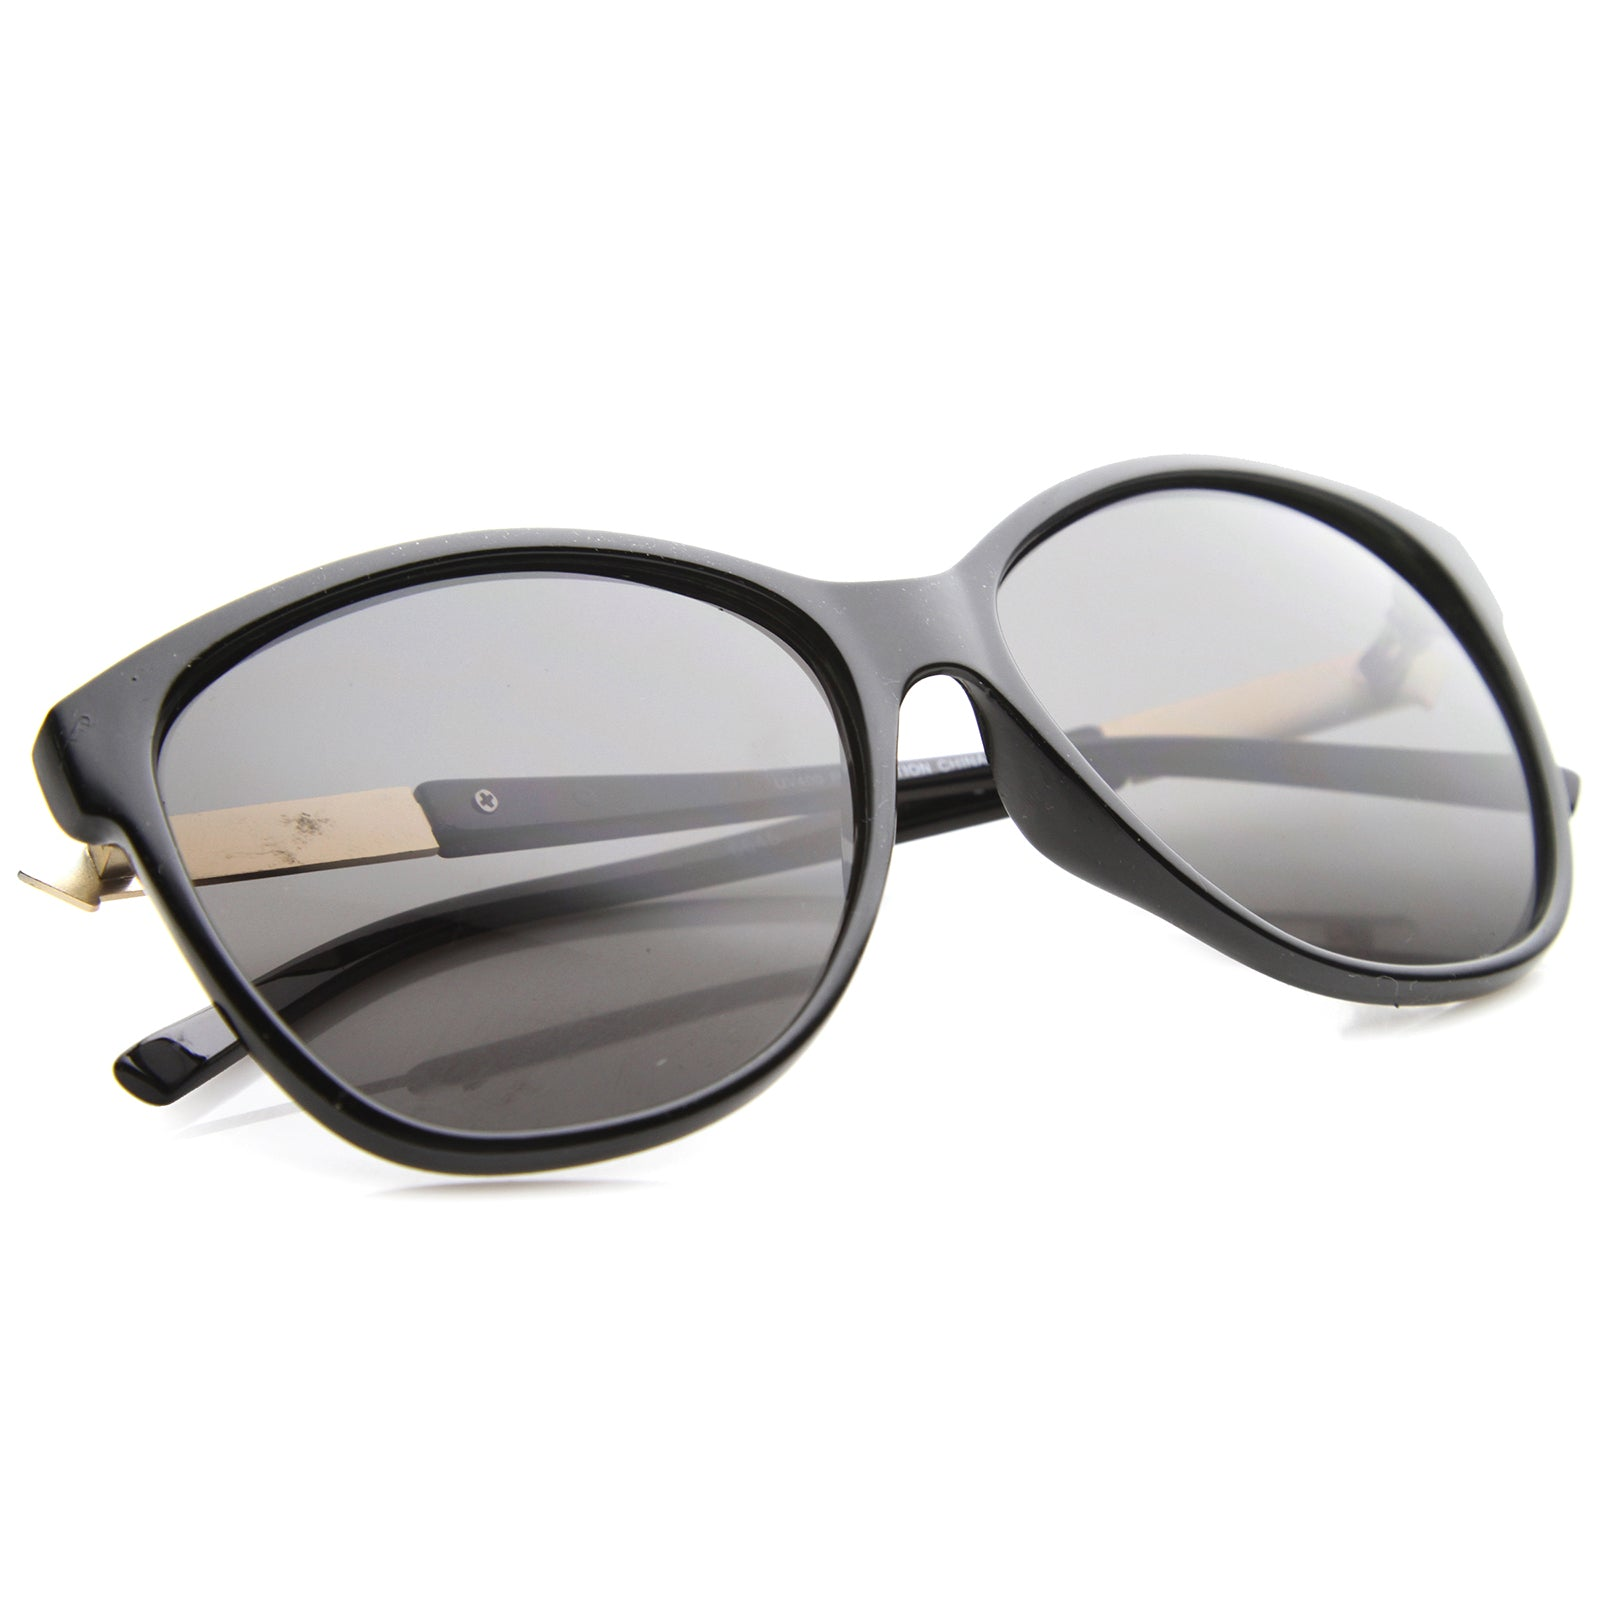 Women's Glam Fashion Metal Temple Oversize Cat Eye Sunglasses 59mm - sunglass.la - 4